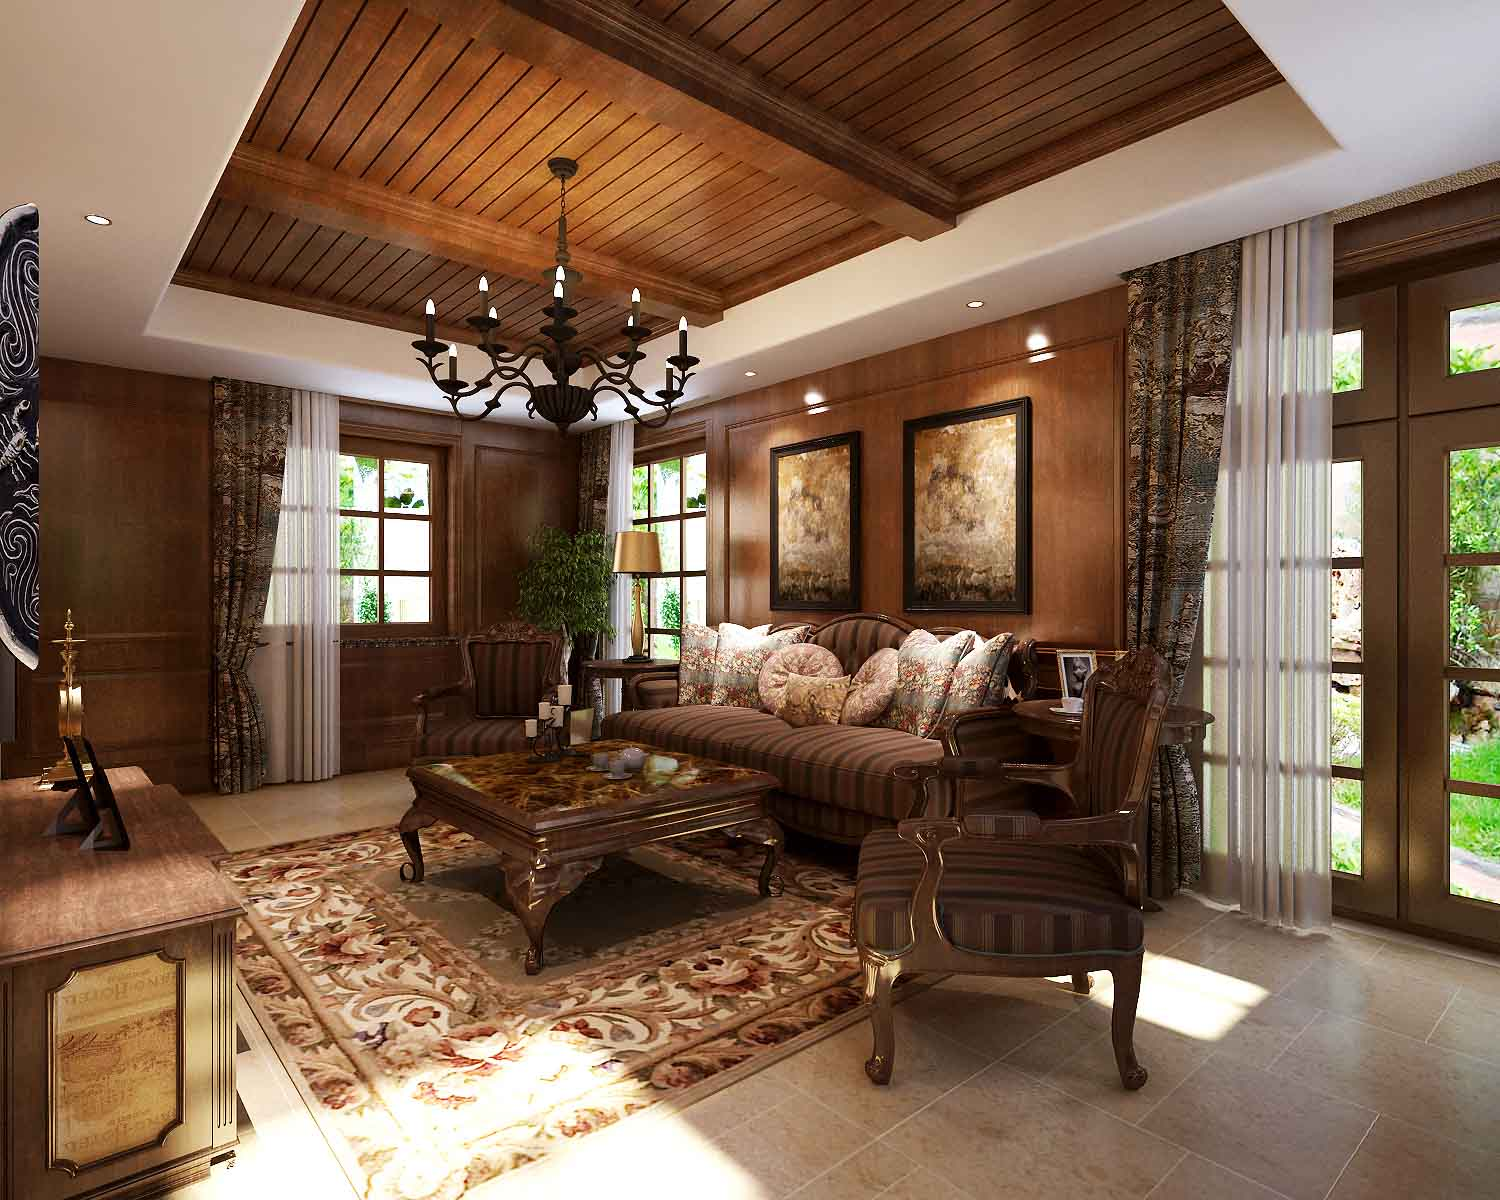 Royal living rooms modern house for Royal living room designs